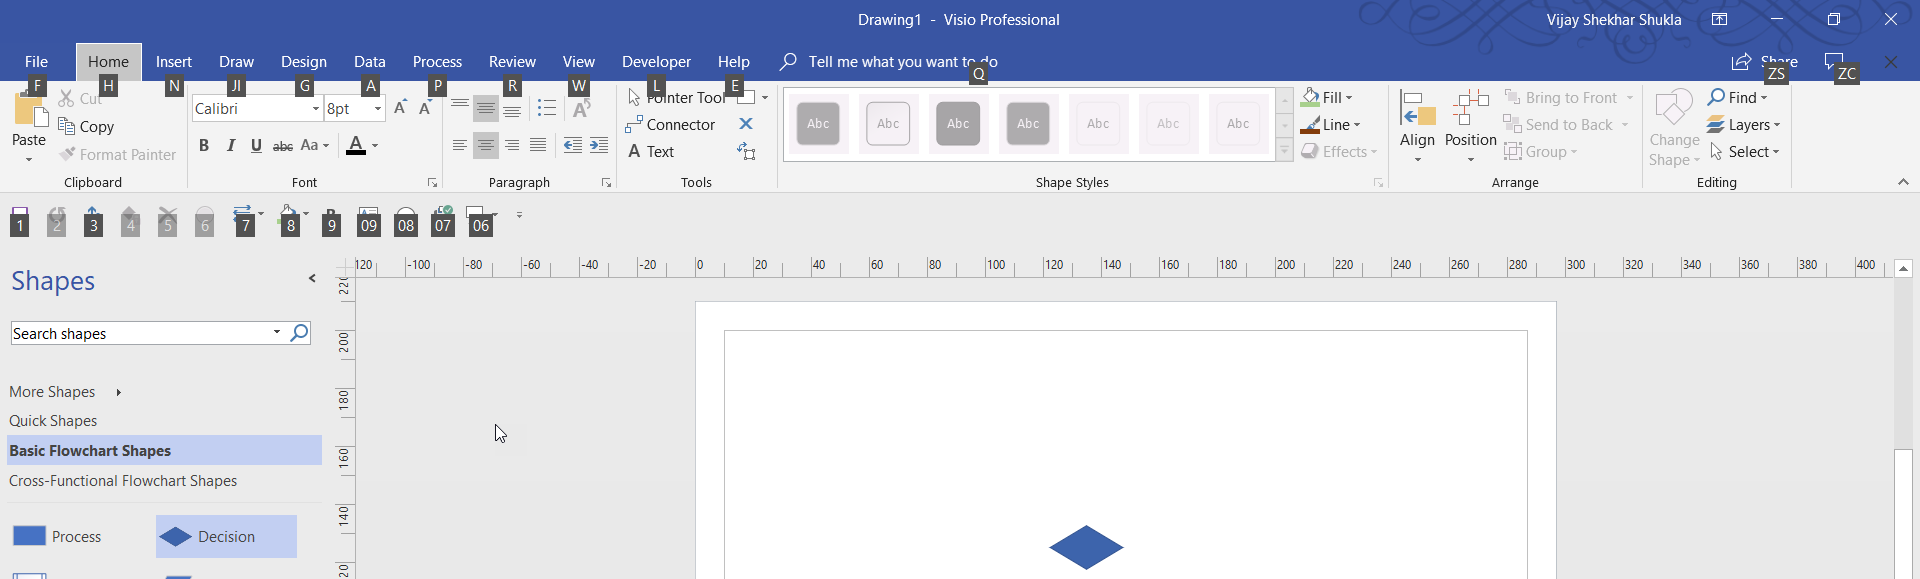 Press Alt to navigate Visio through keyboard